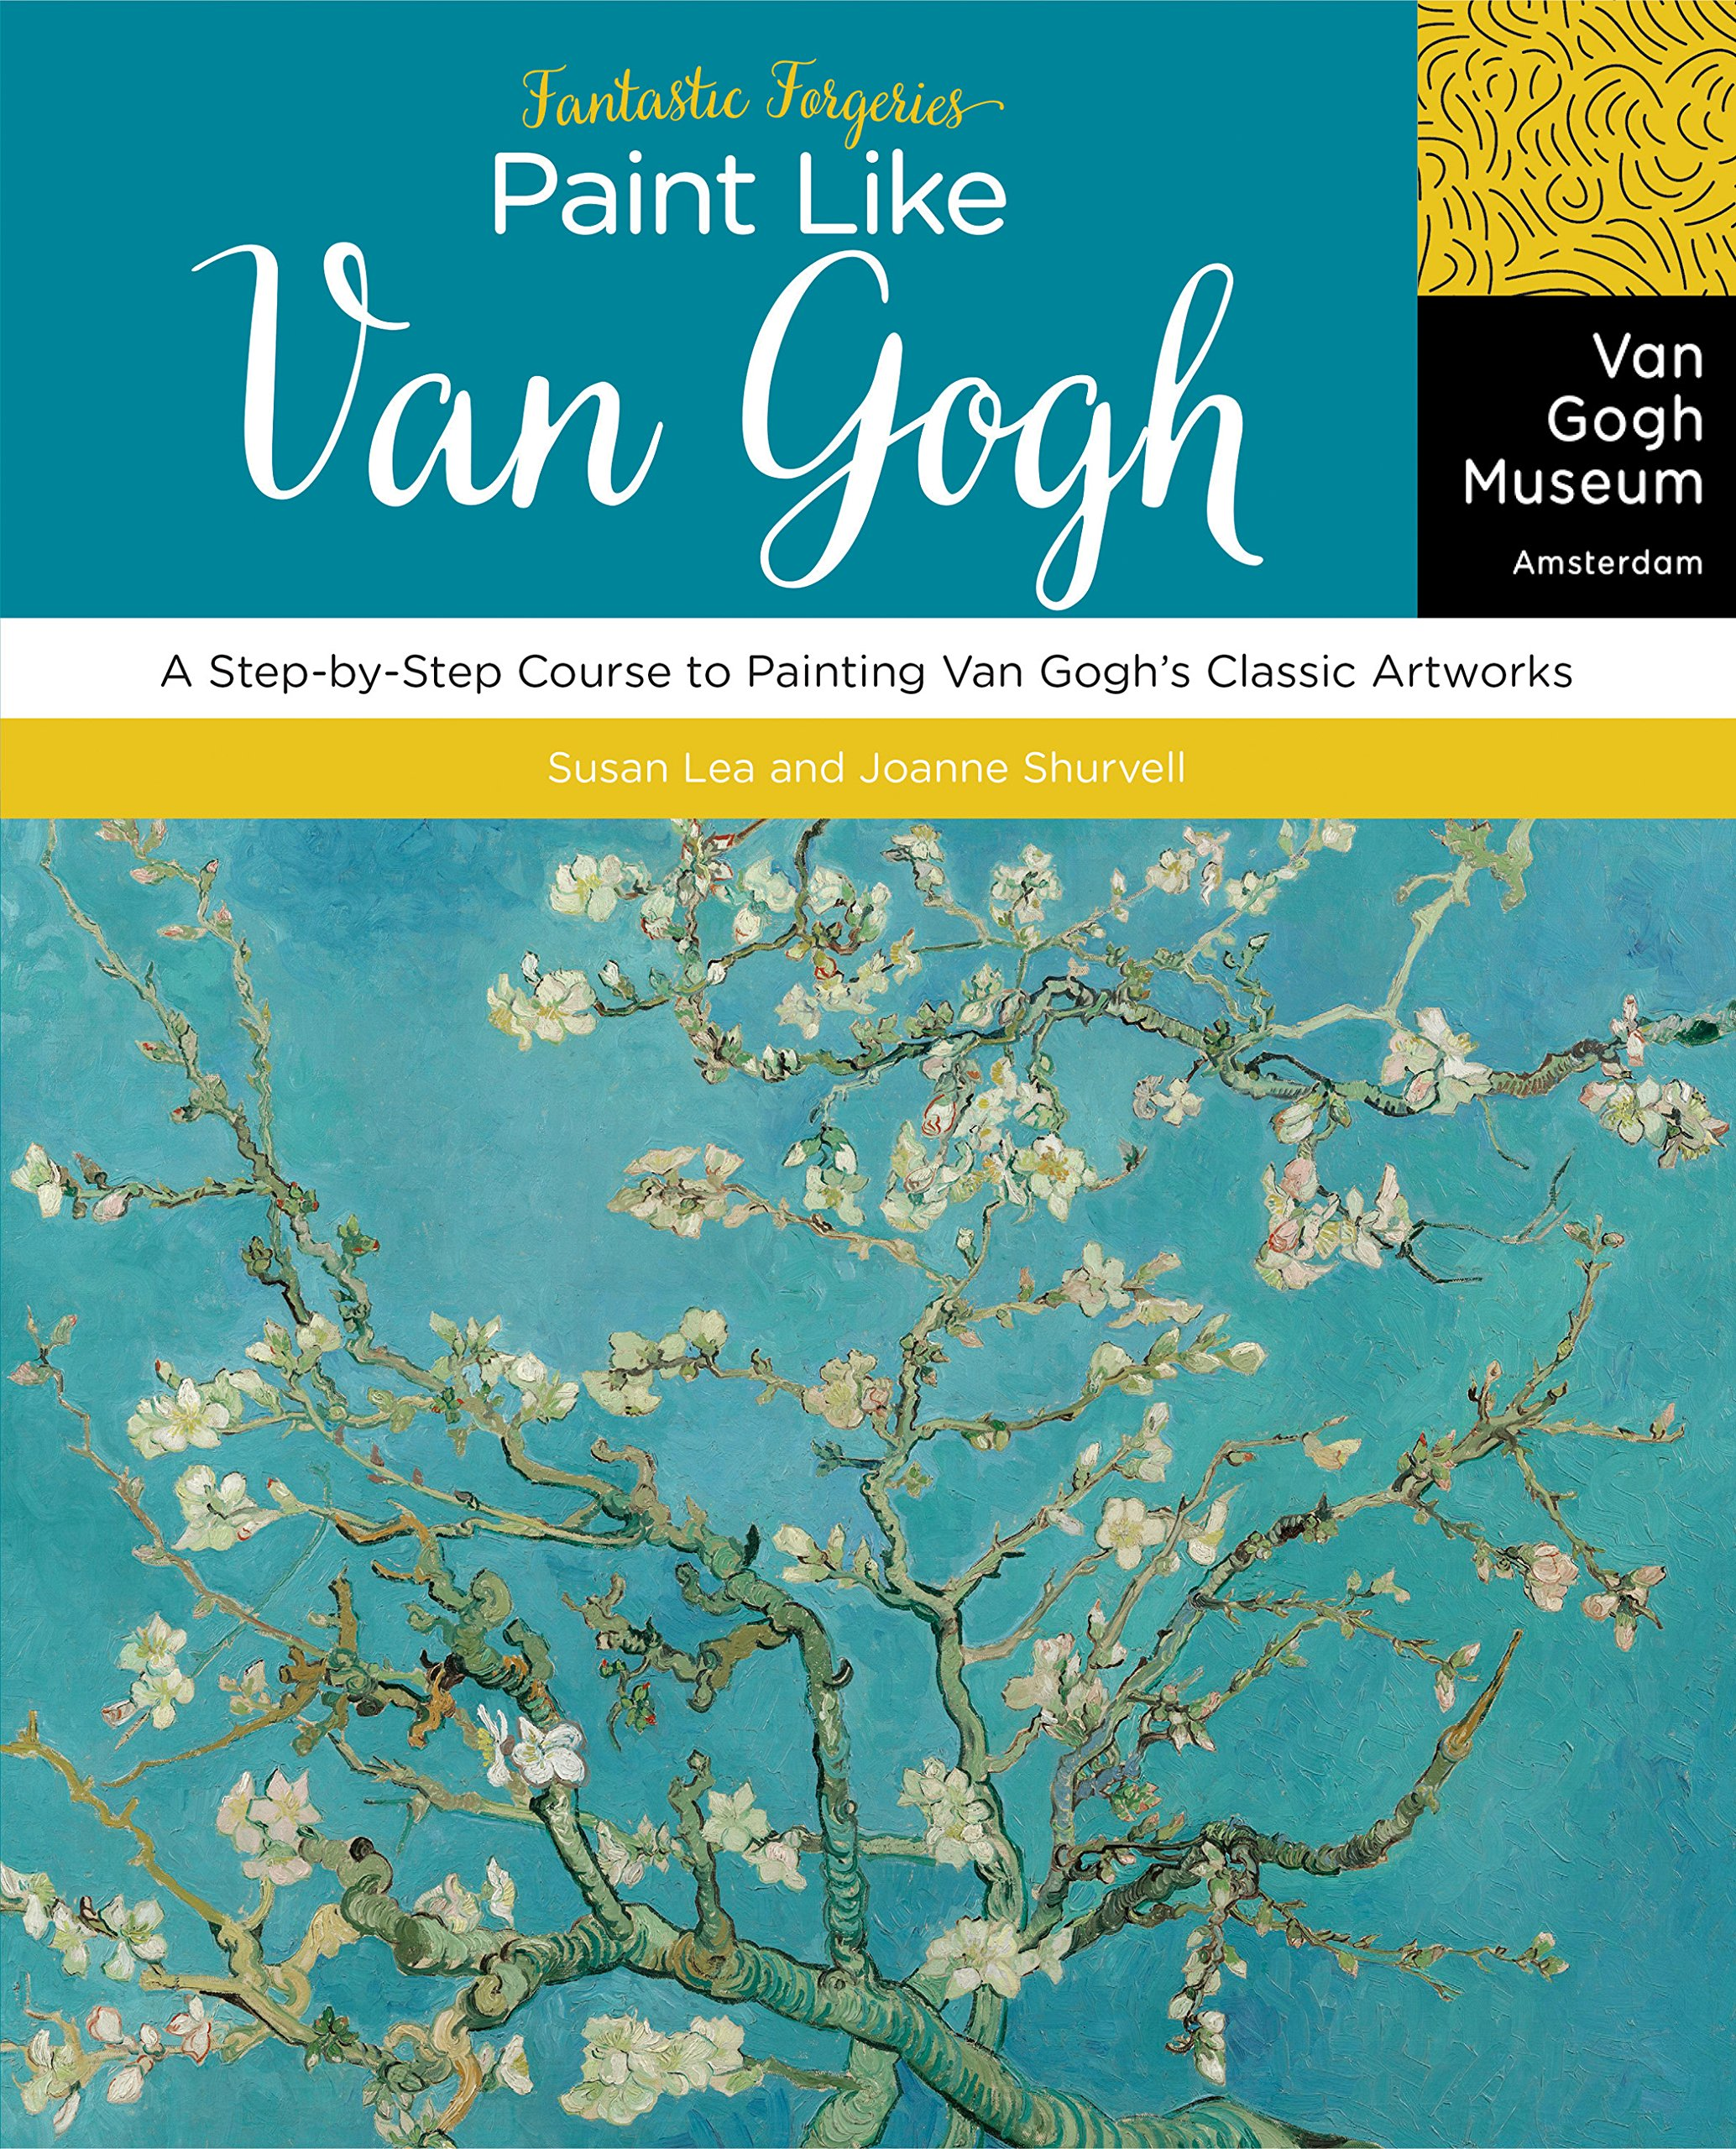 Fantastic Forgeries: Paint Like Van Gogh: A Step-by-Step Course to Painting Van Gogh's Classic Artworks PDF